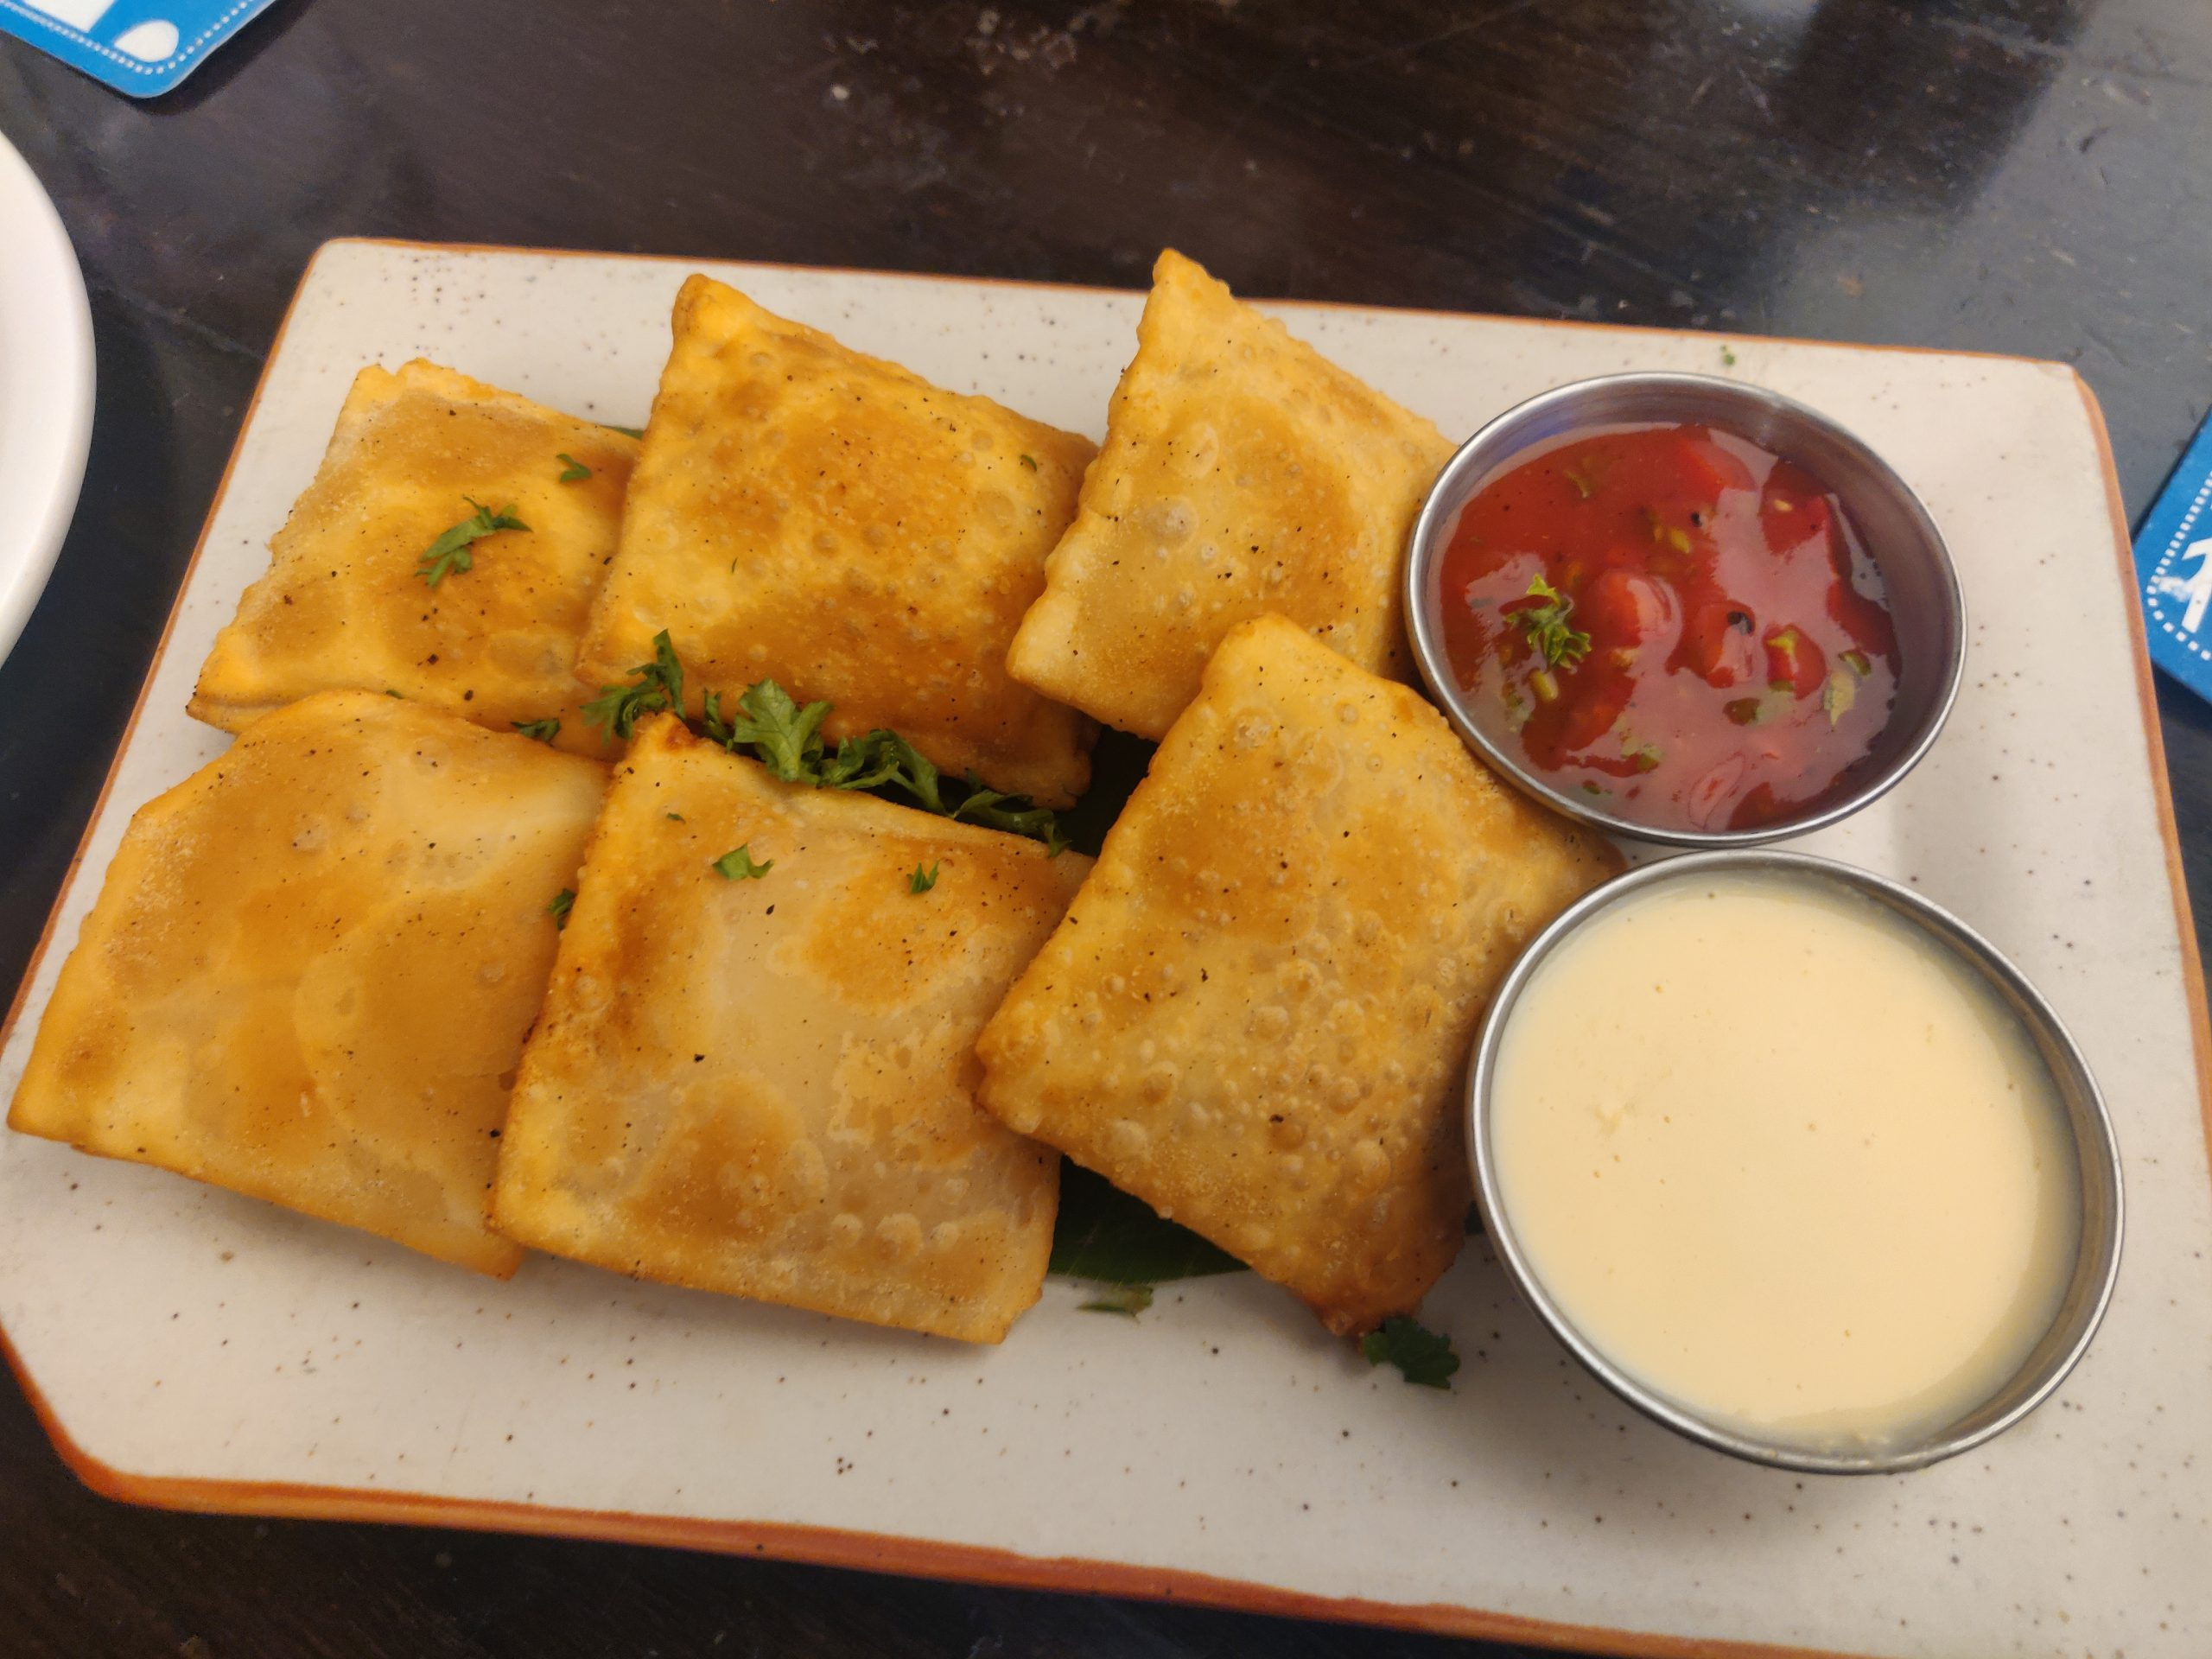 Pizza Pockets at our food blog